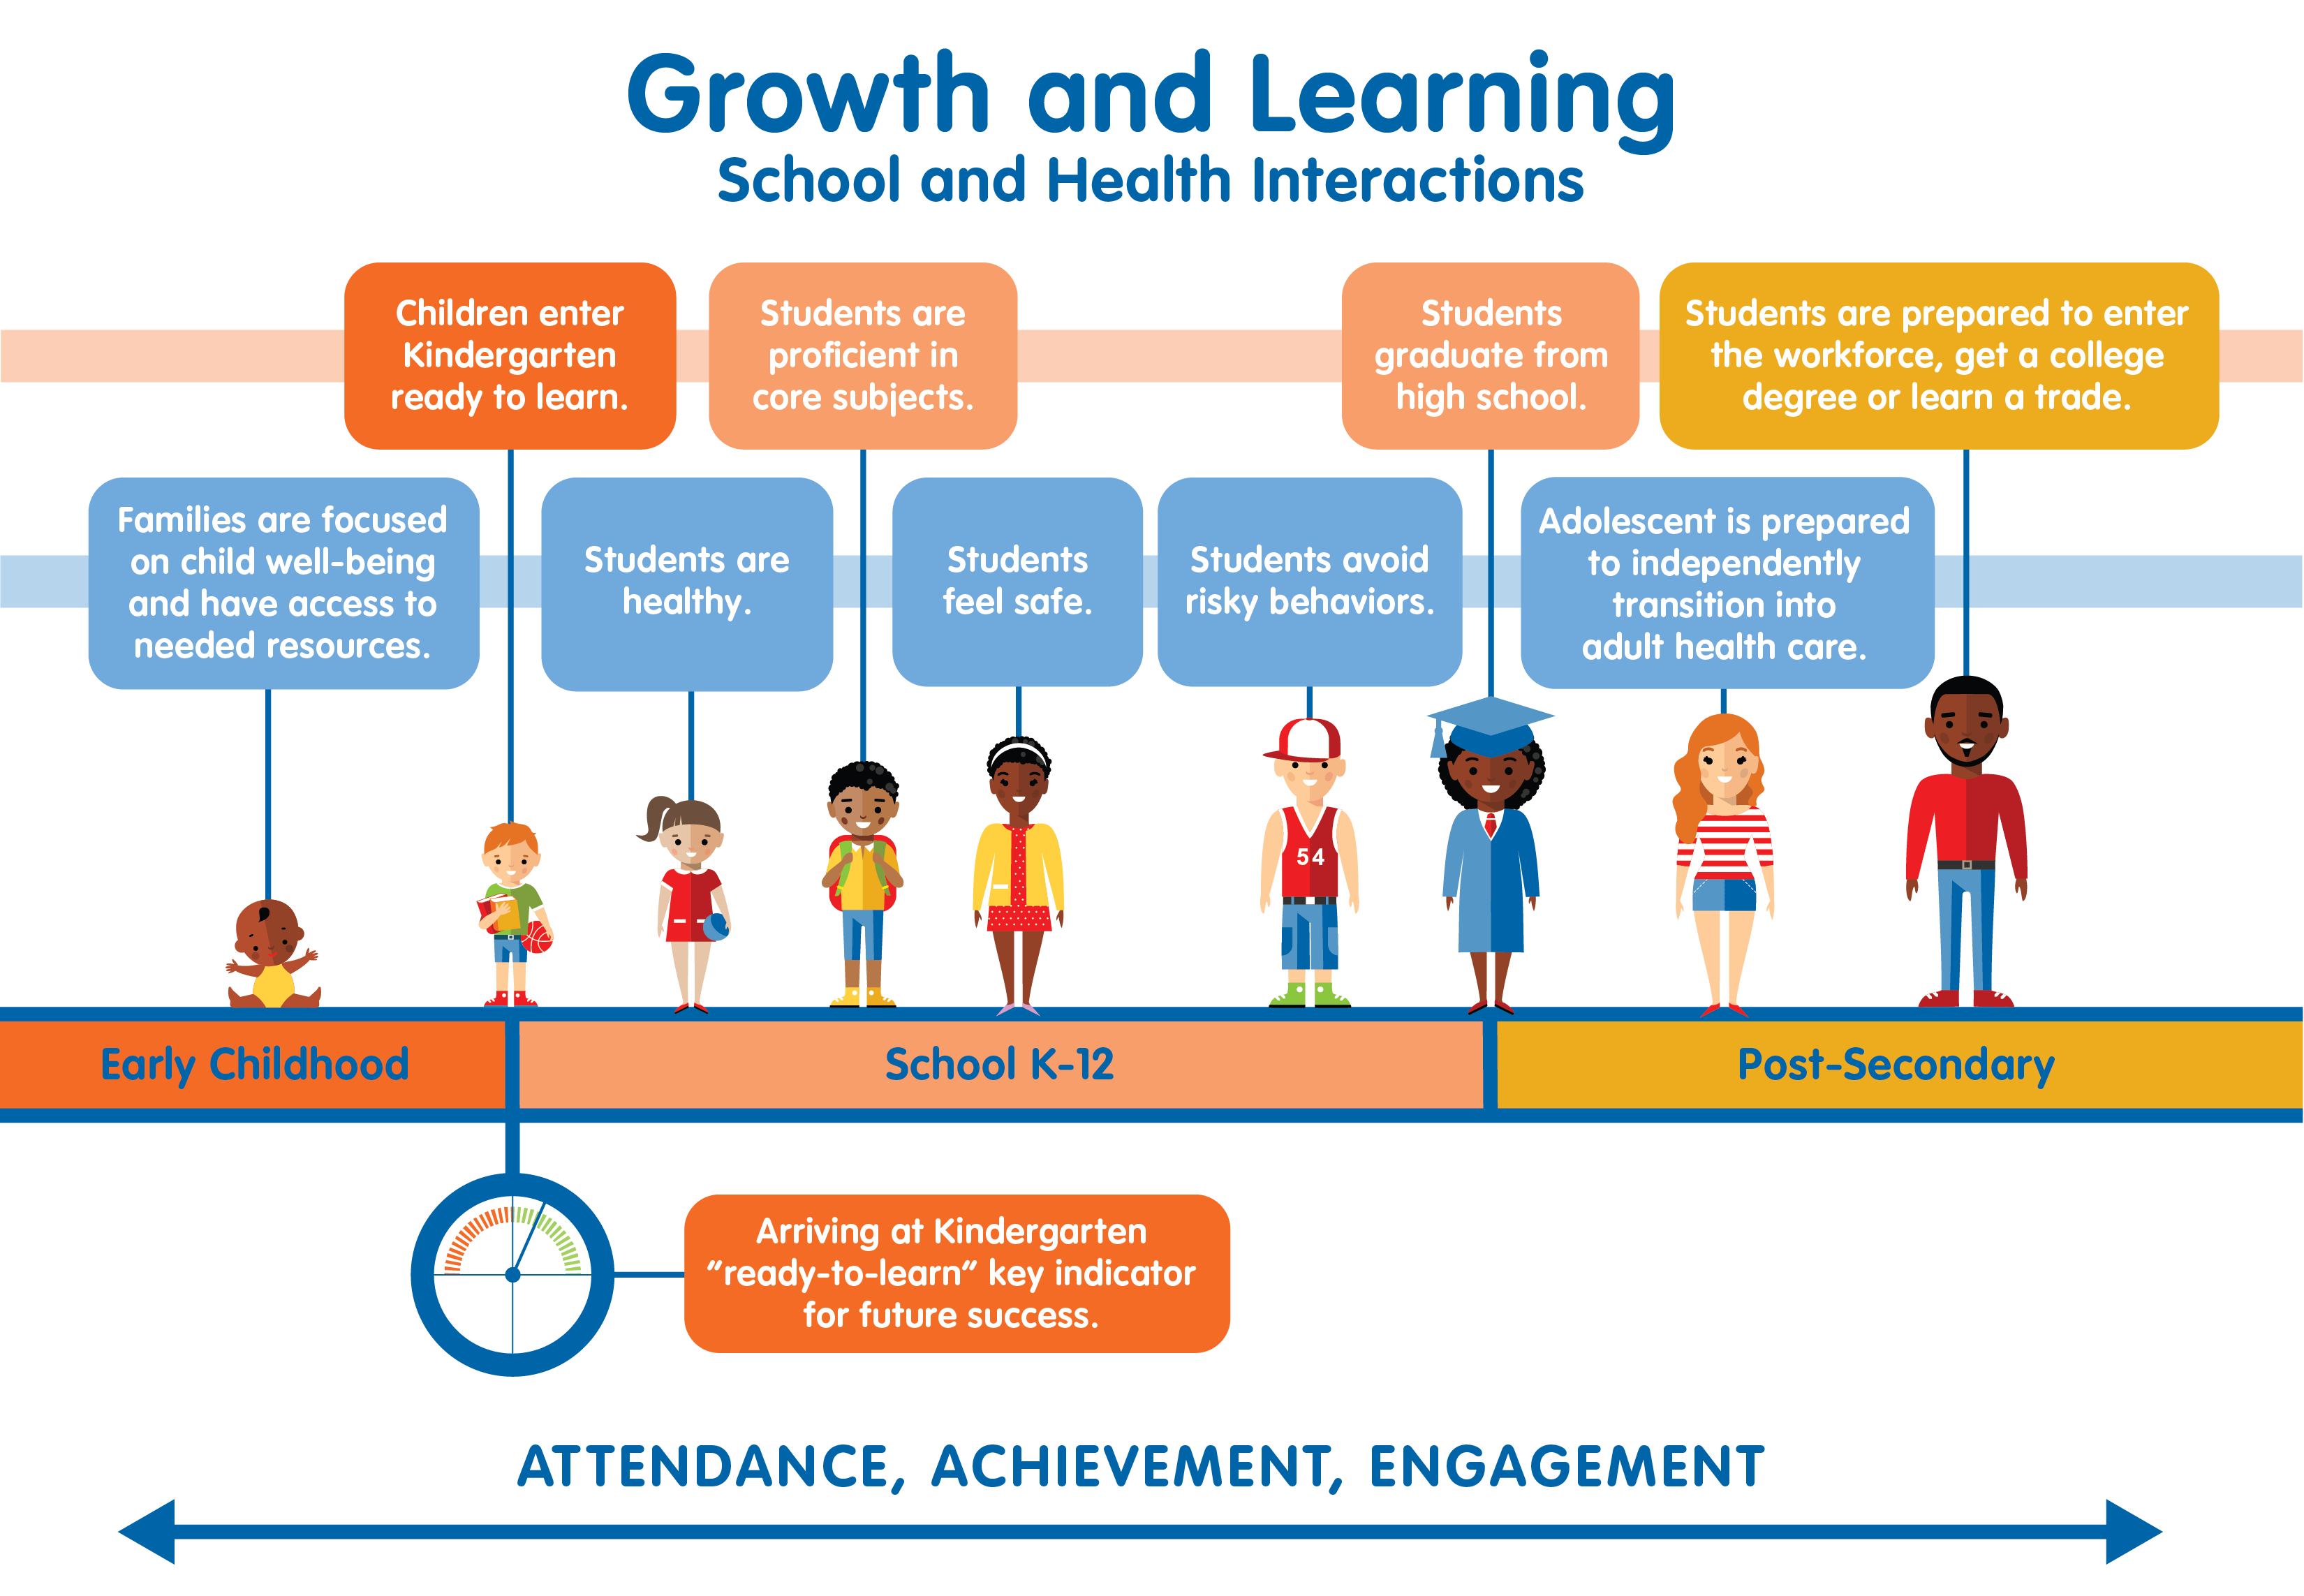 """Graphic that shows """"growth and learning school and health interactions"""" from early childhood to school K-12 to post-secondary."""